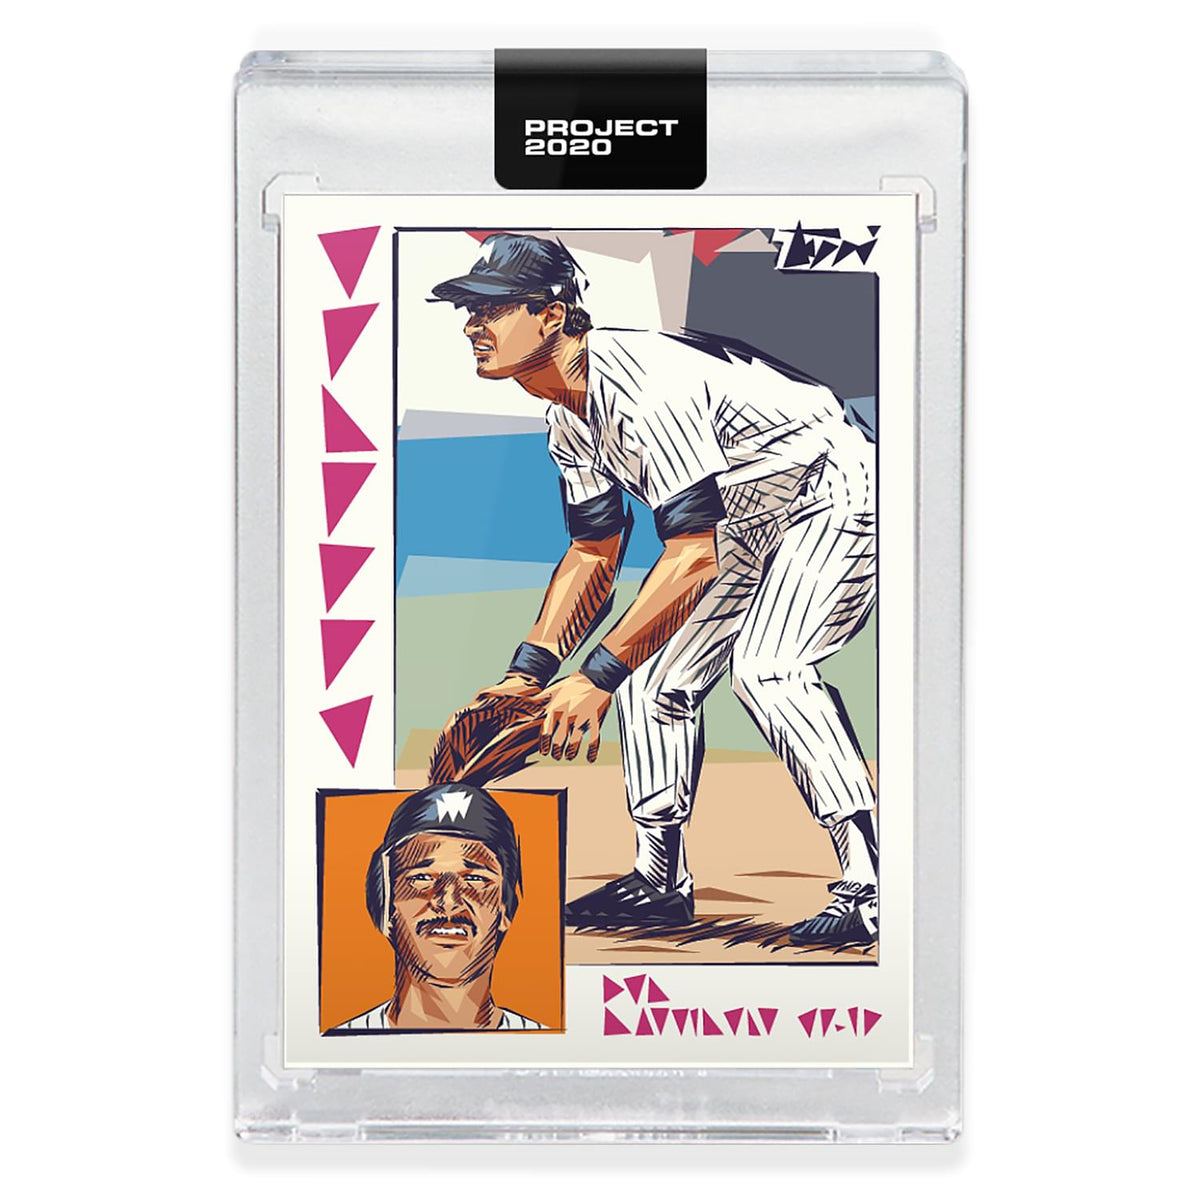 Topps PROJECT 2020 Card 208 - 1984 Don Mattingly by Naturel